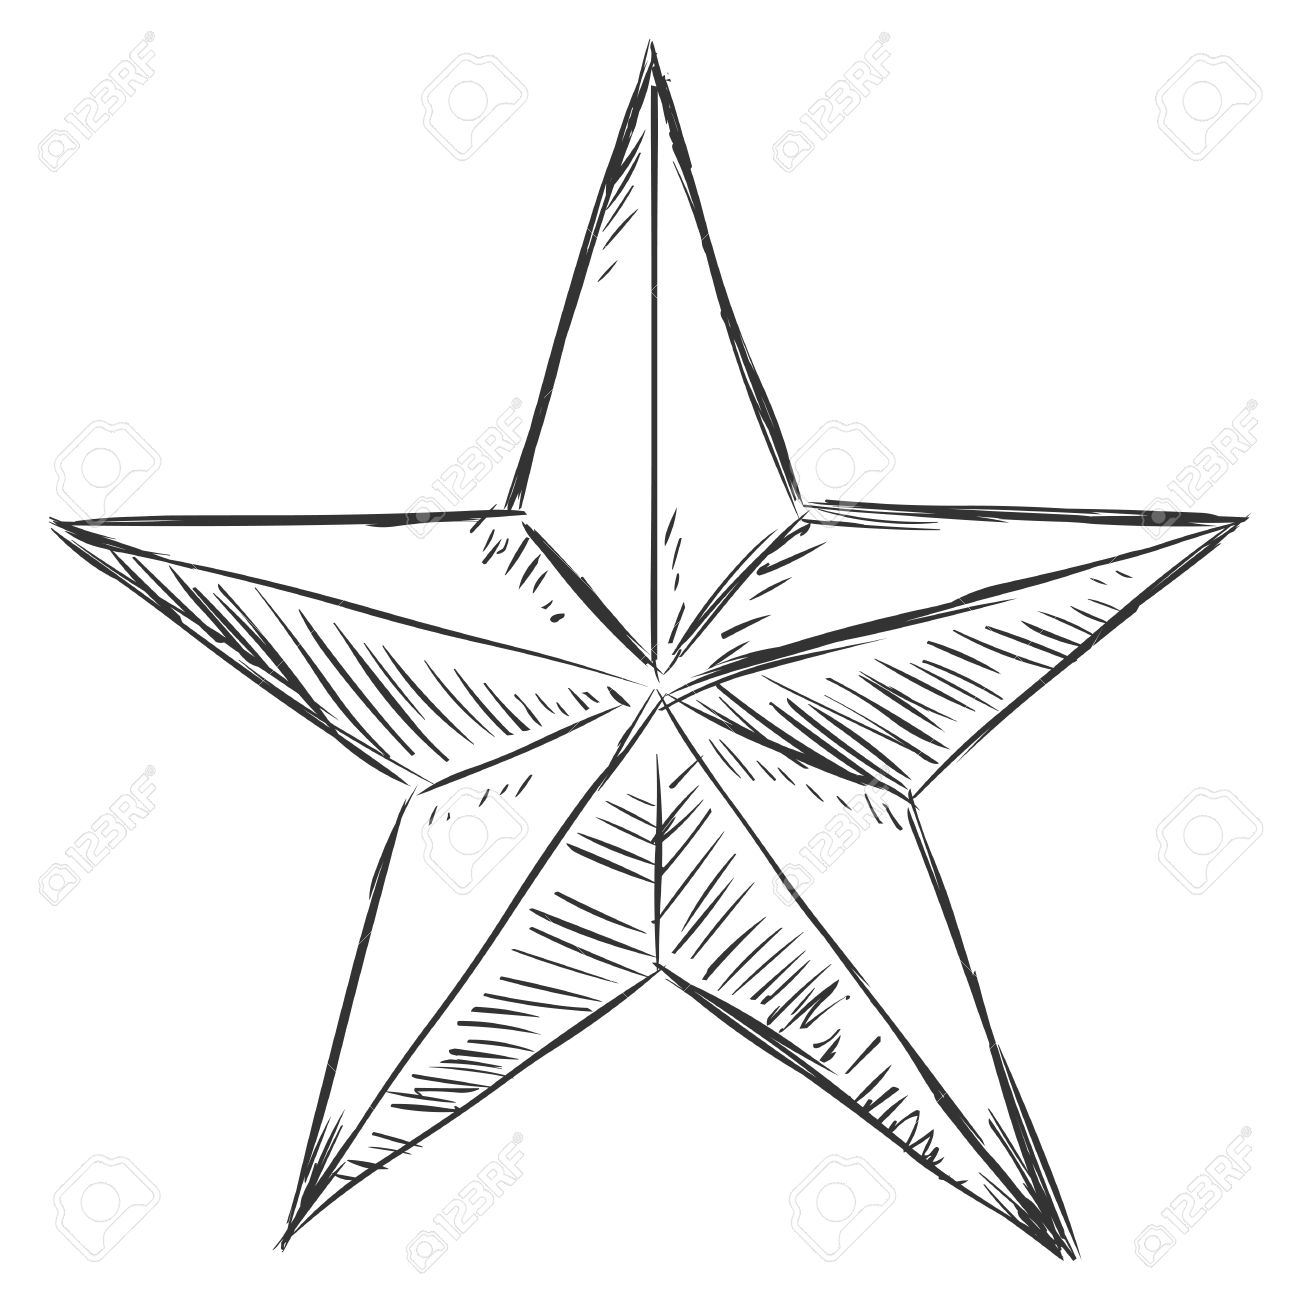 1300x1300 Vector Sketch Star Royalty Free Cliparts, Vectors, And Stock